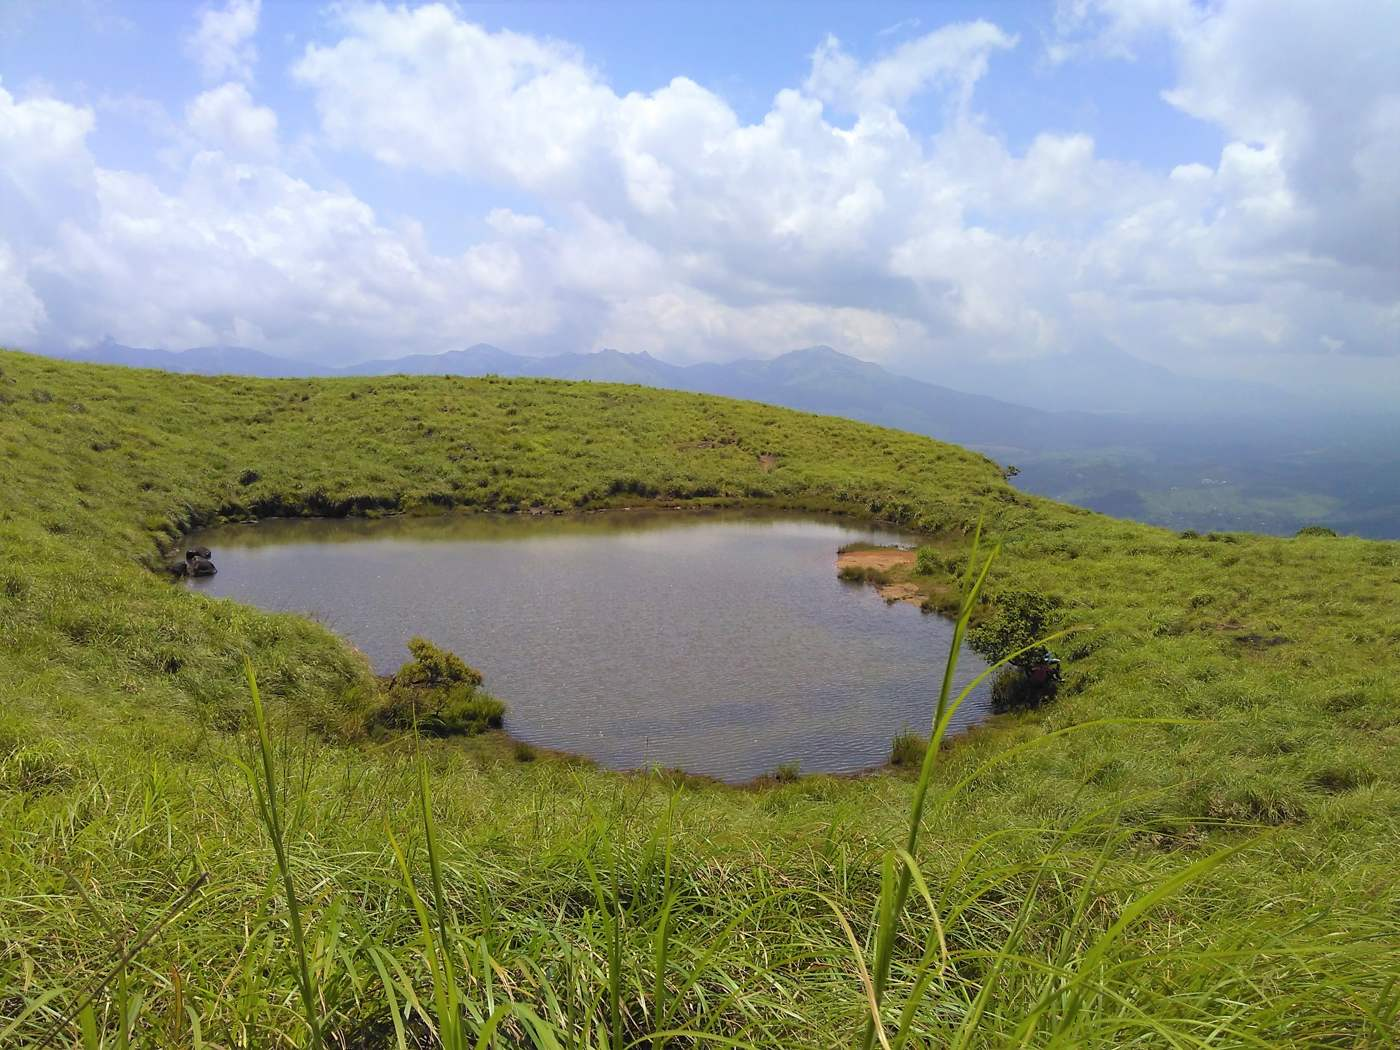 Heart shaped pool at the top of Chembra peak